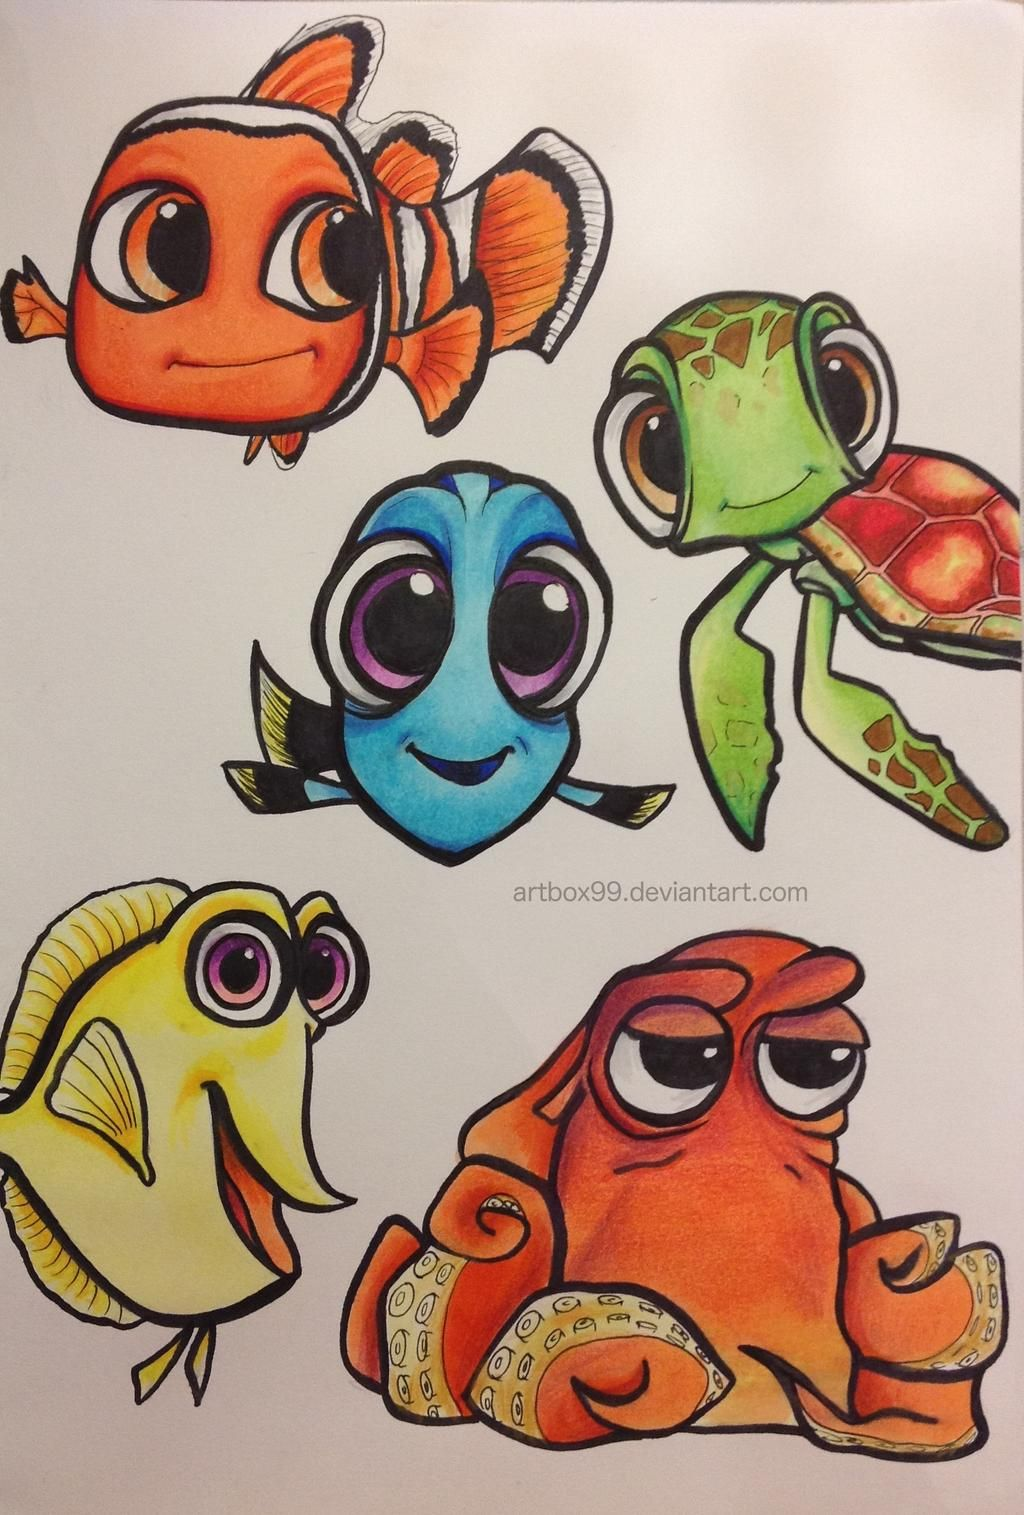 Chibi Finding Nemo/Dory Characters by artbox99 on DeviantArt